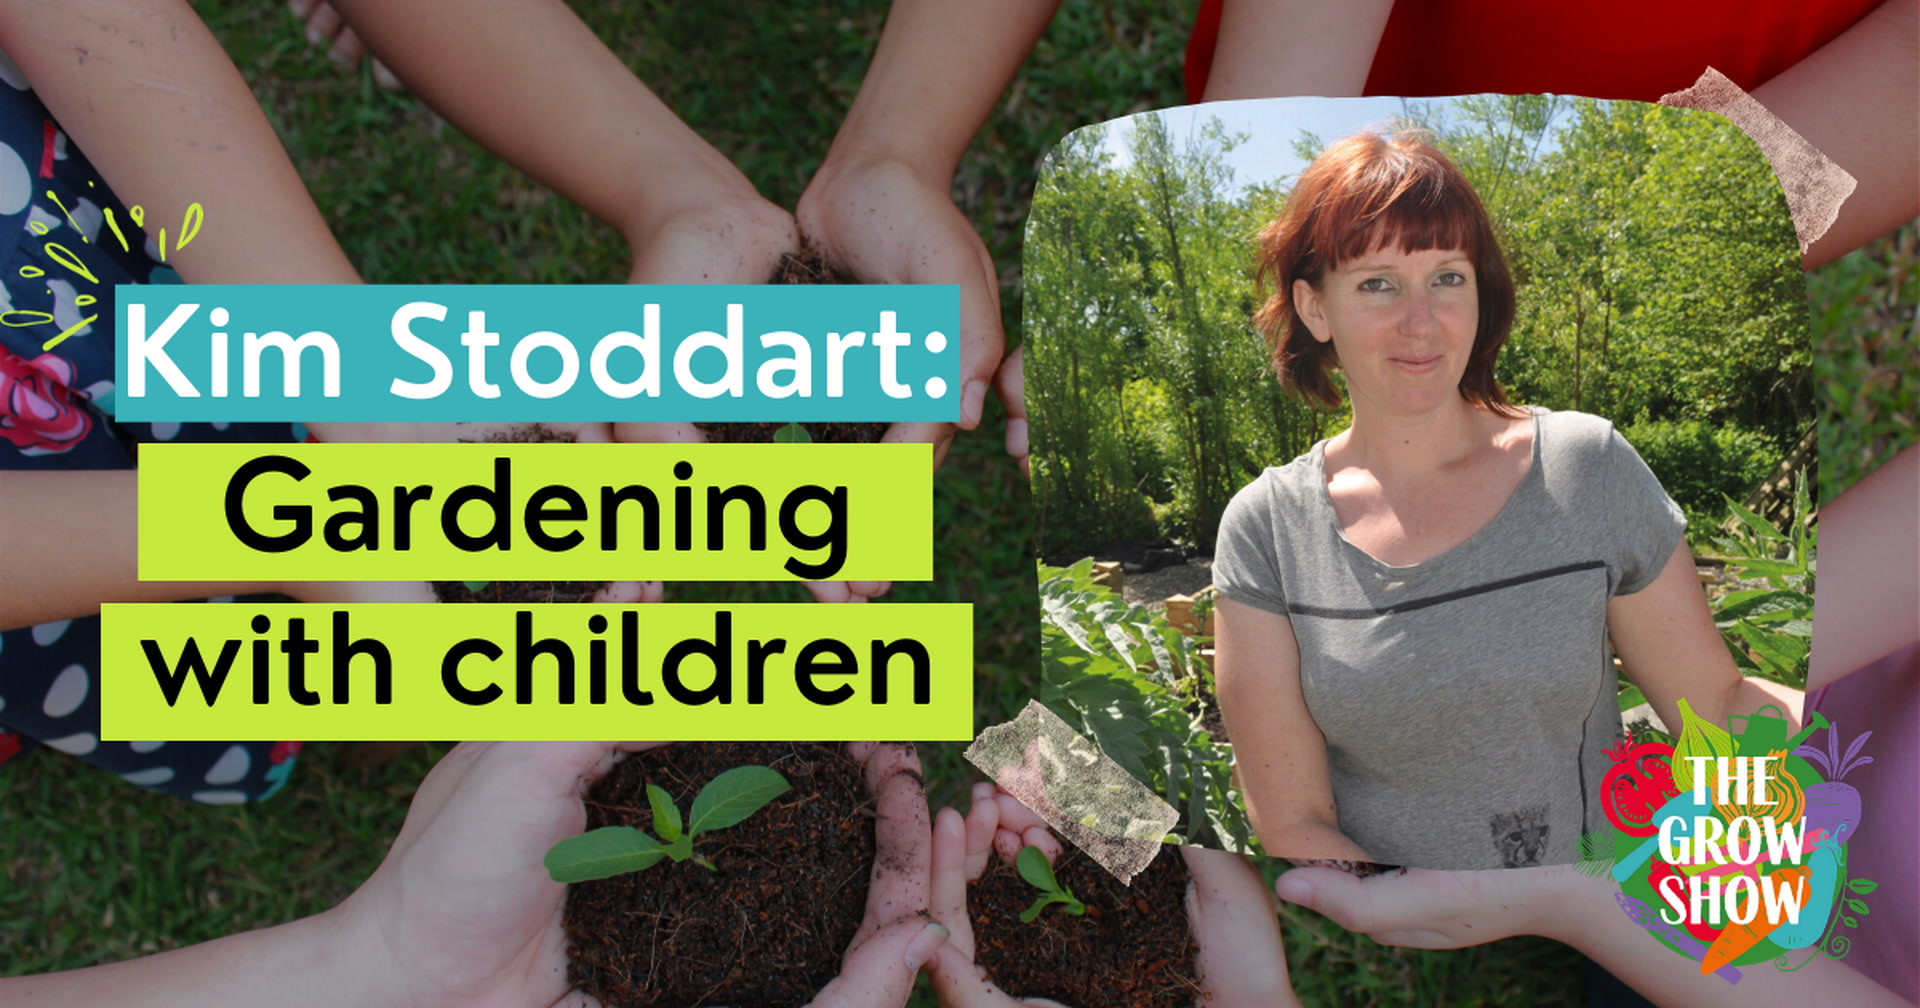 Kim Stoddart: Gardening with children